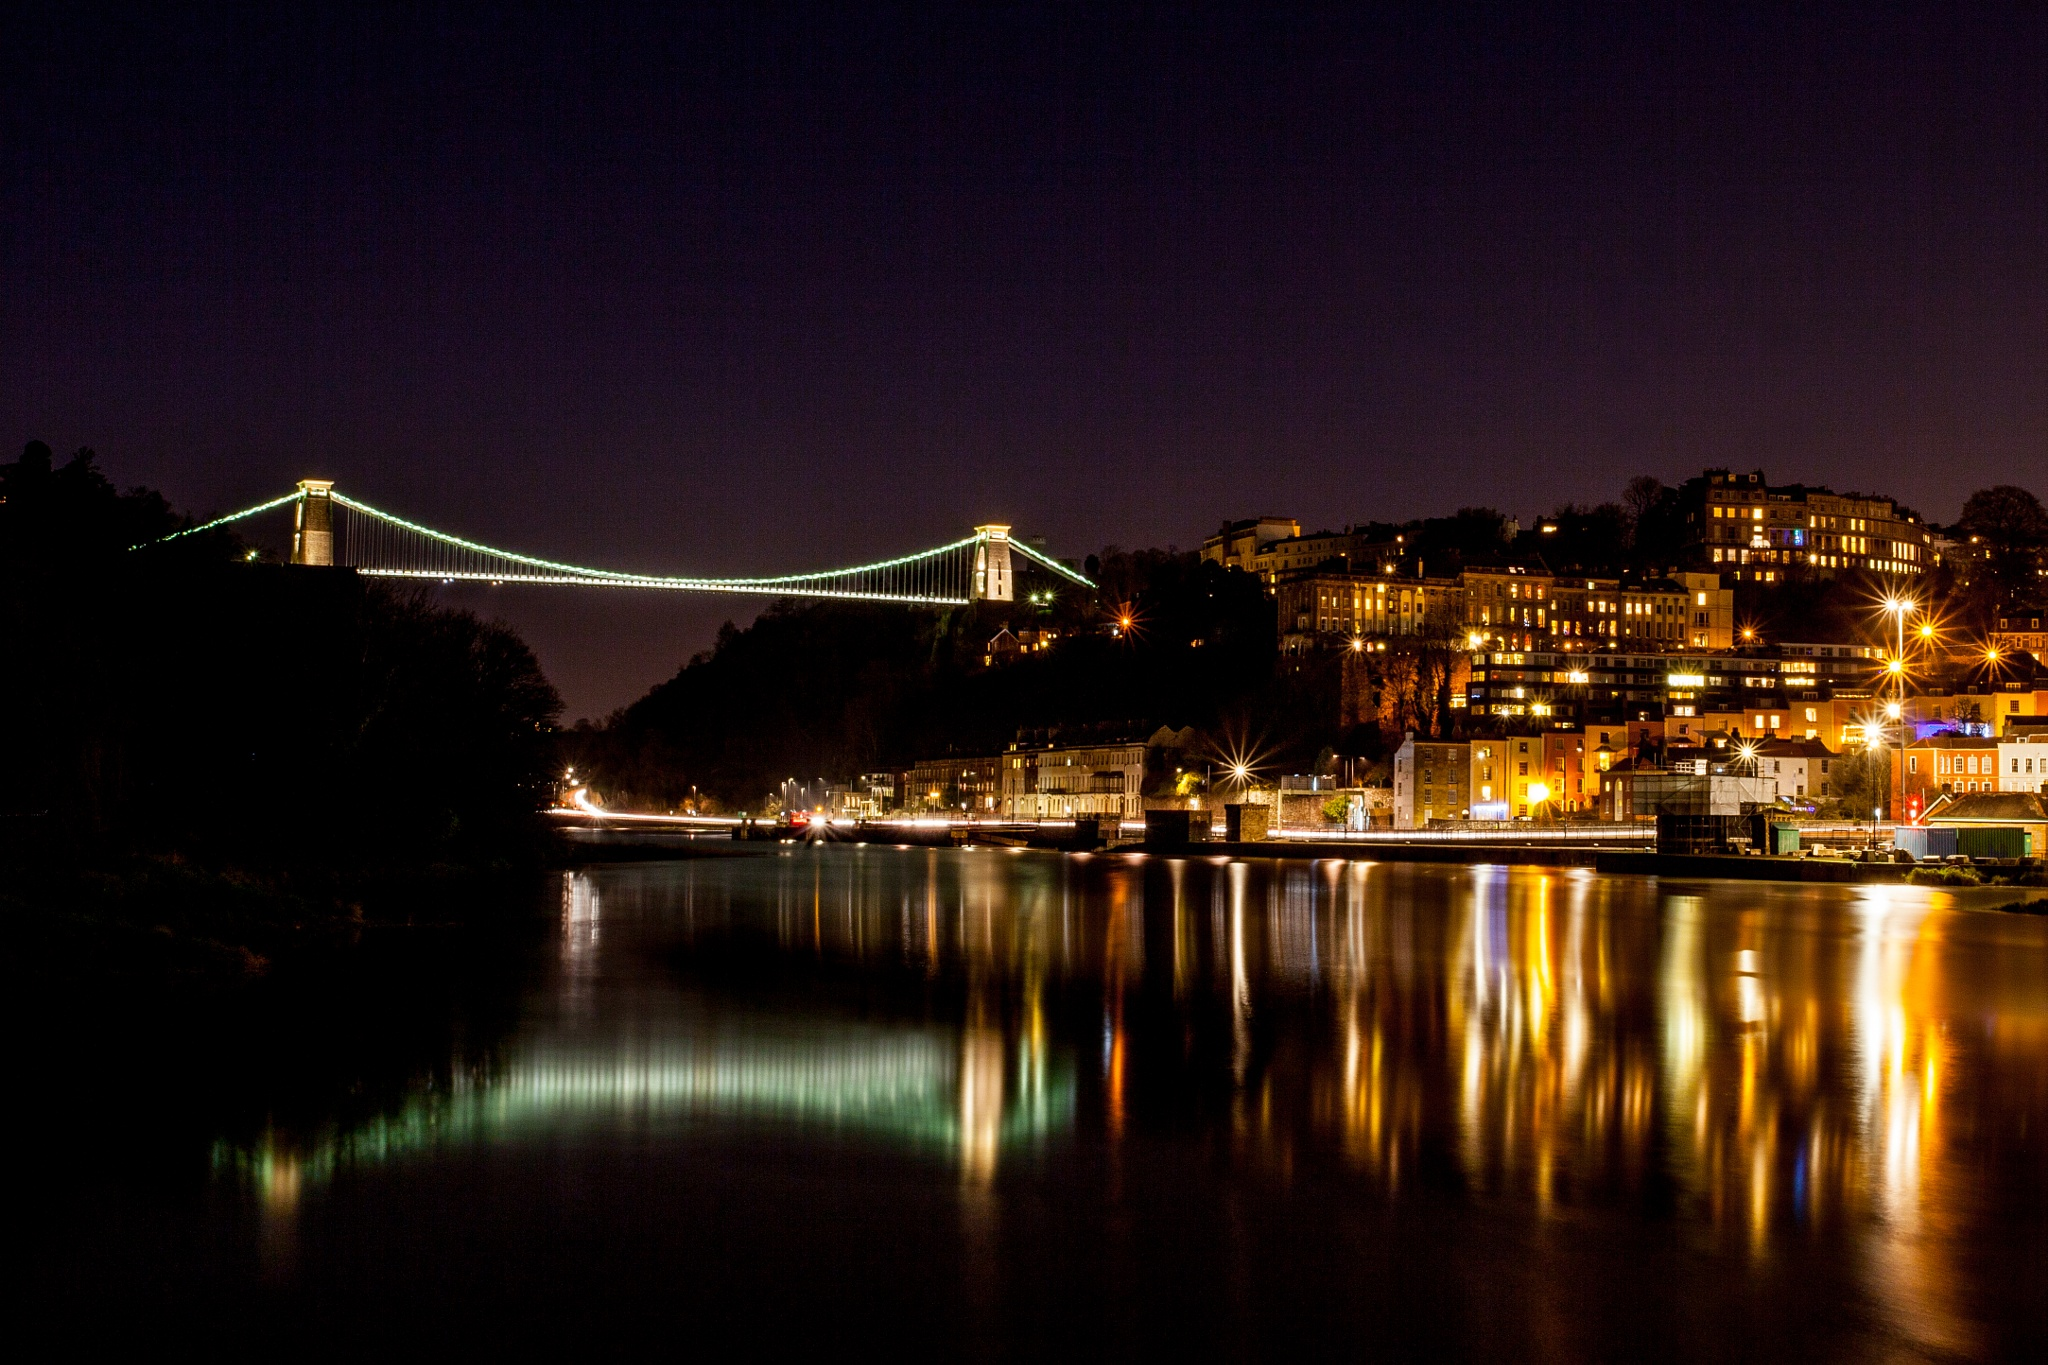 Suspension Bridge & Clifton by Russ Summers